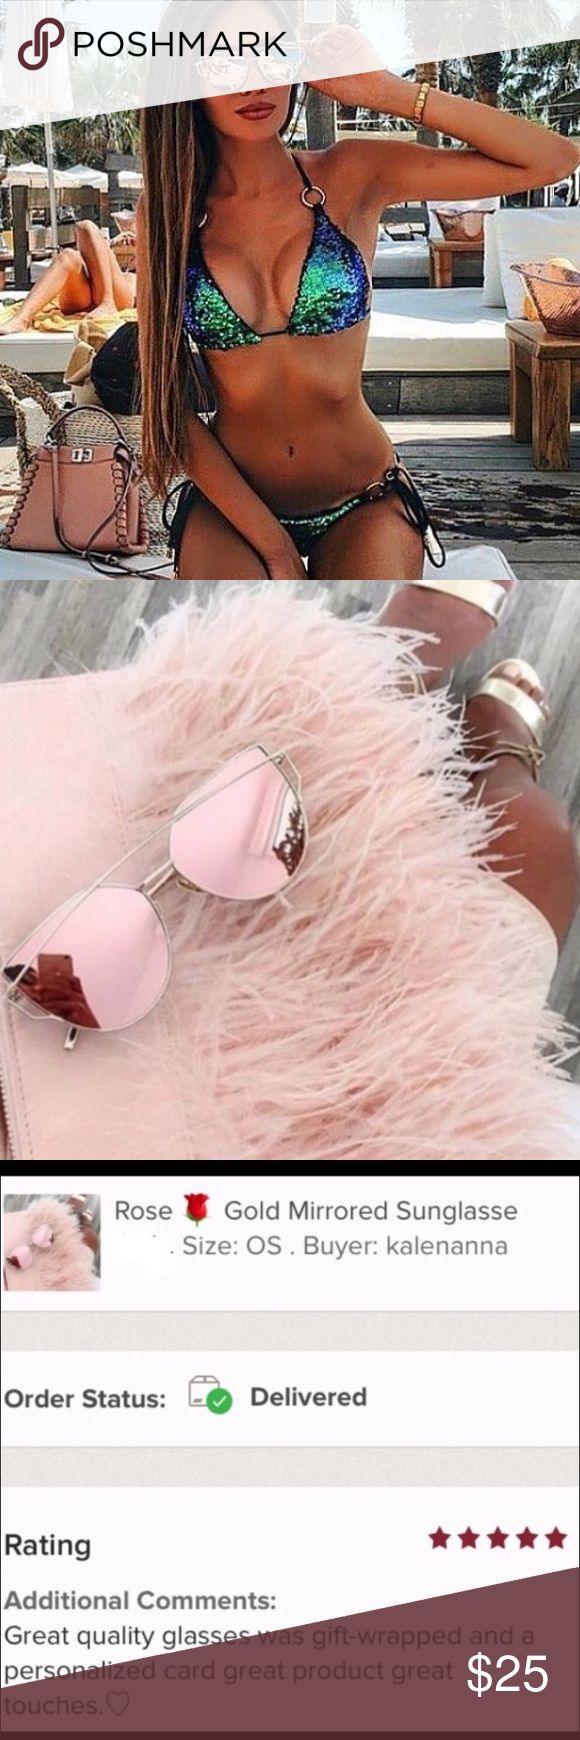 🌹 Gorgeous Rose Gold Mirrored Sunglasses 🌹 Gorgeous Rose Gold Mirrored Sunglasses. Cat Eye Aviator.                                                                                      ❤️Brand New (comes in original packaging) ❤️Material: Metal and Glass! Very high Quality!                                                                                     ❤️Color: Pink and gold ❤️Top Seller and Always ⭐️⭐️⭐️⭐️⭐️ item! Accessories Sunglasses